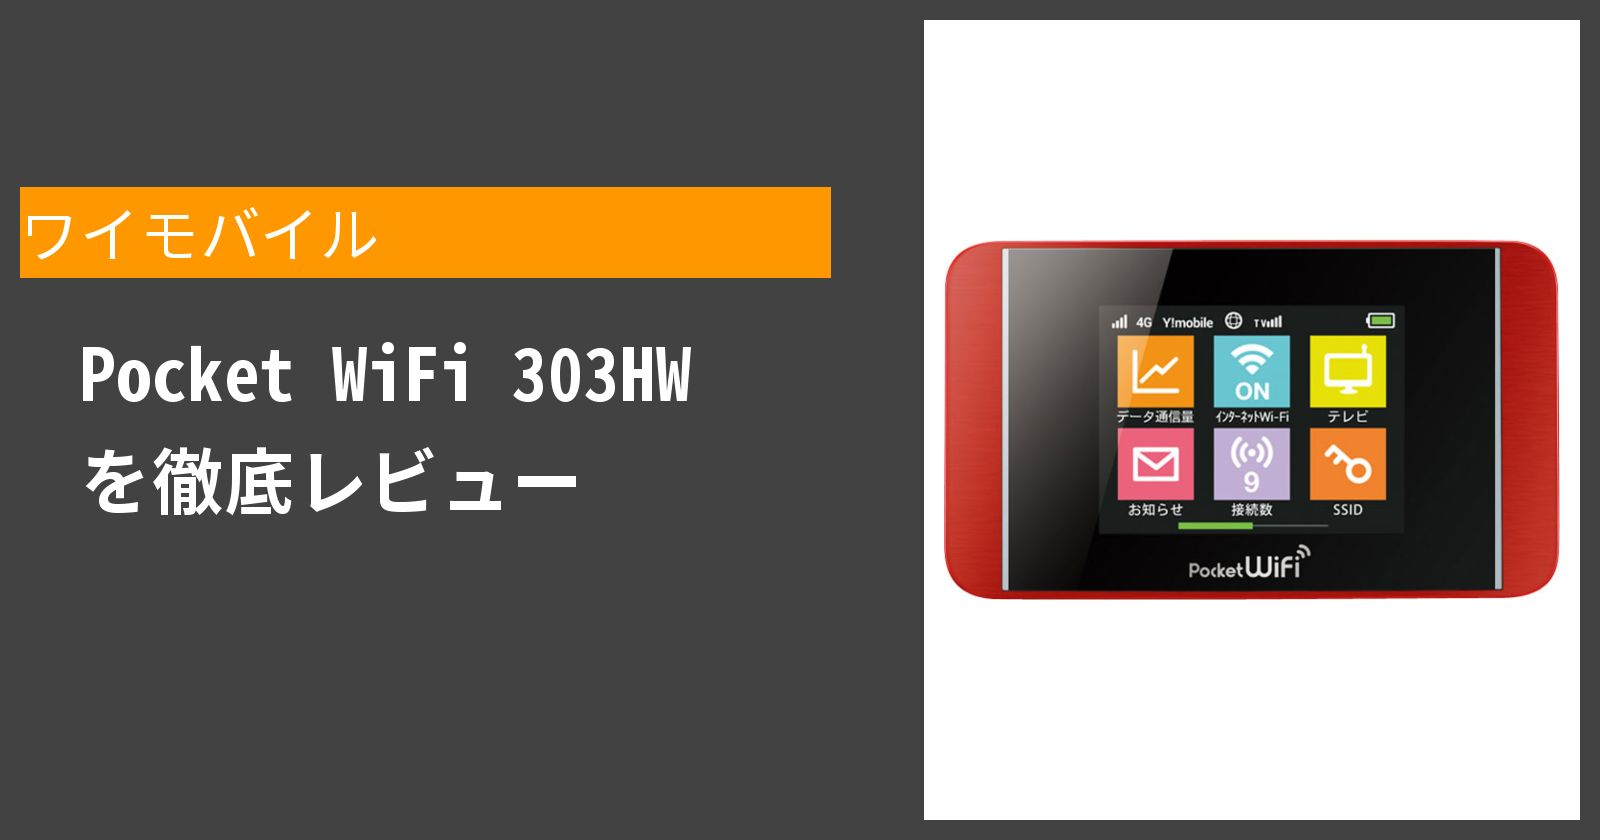 Pocket WiFi 303HWを徹底評価